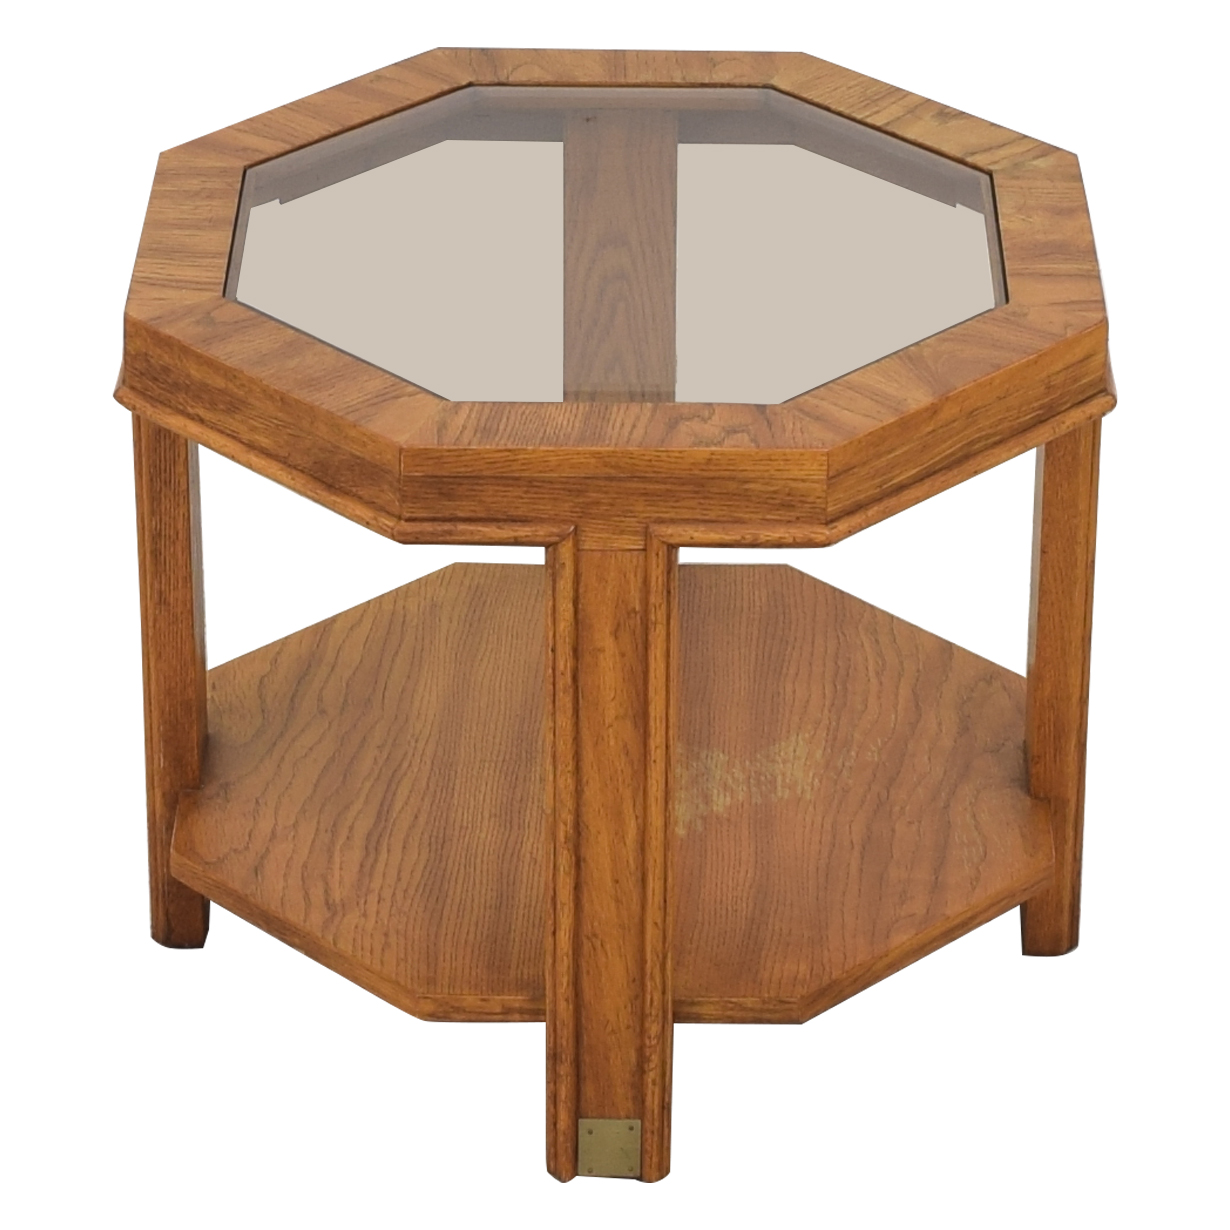 Drexel Heritage Drexel Heritage Hexagon Side Table on sale